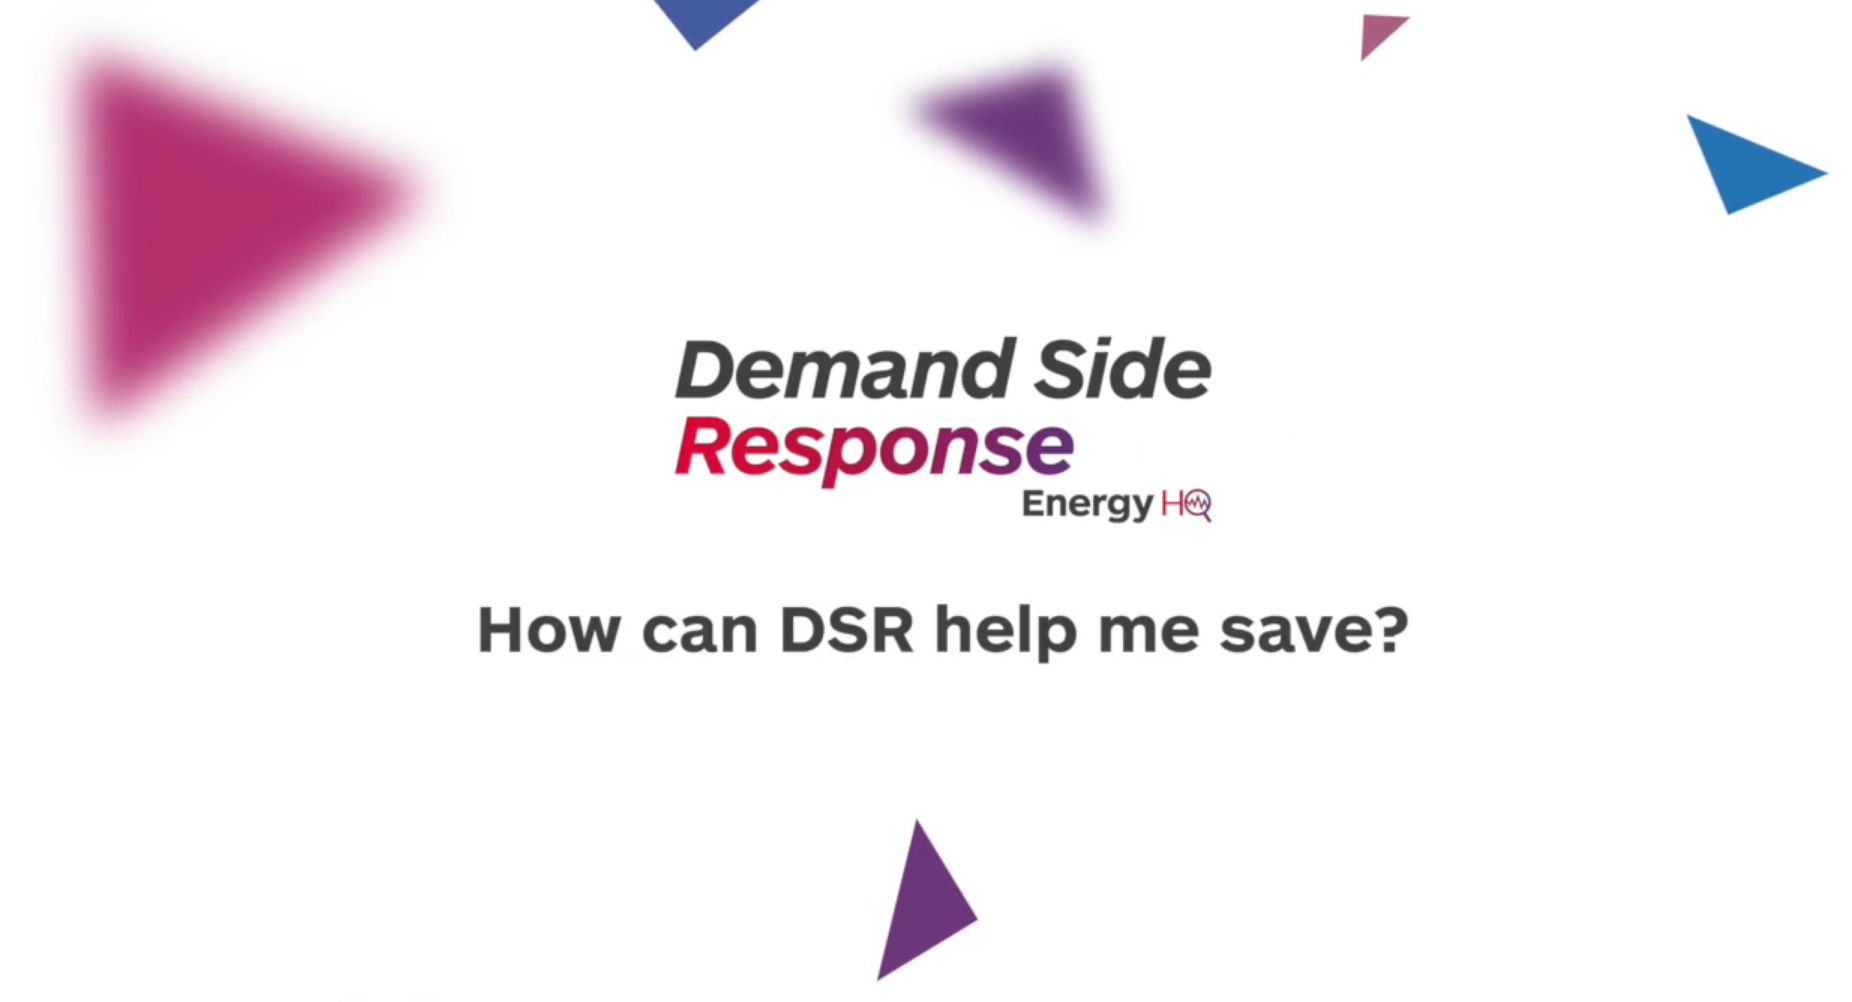 How can DSR help me save?